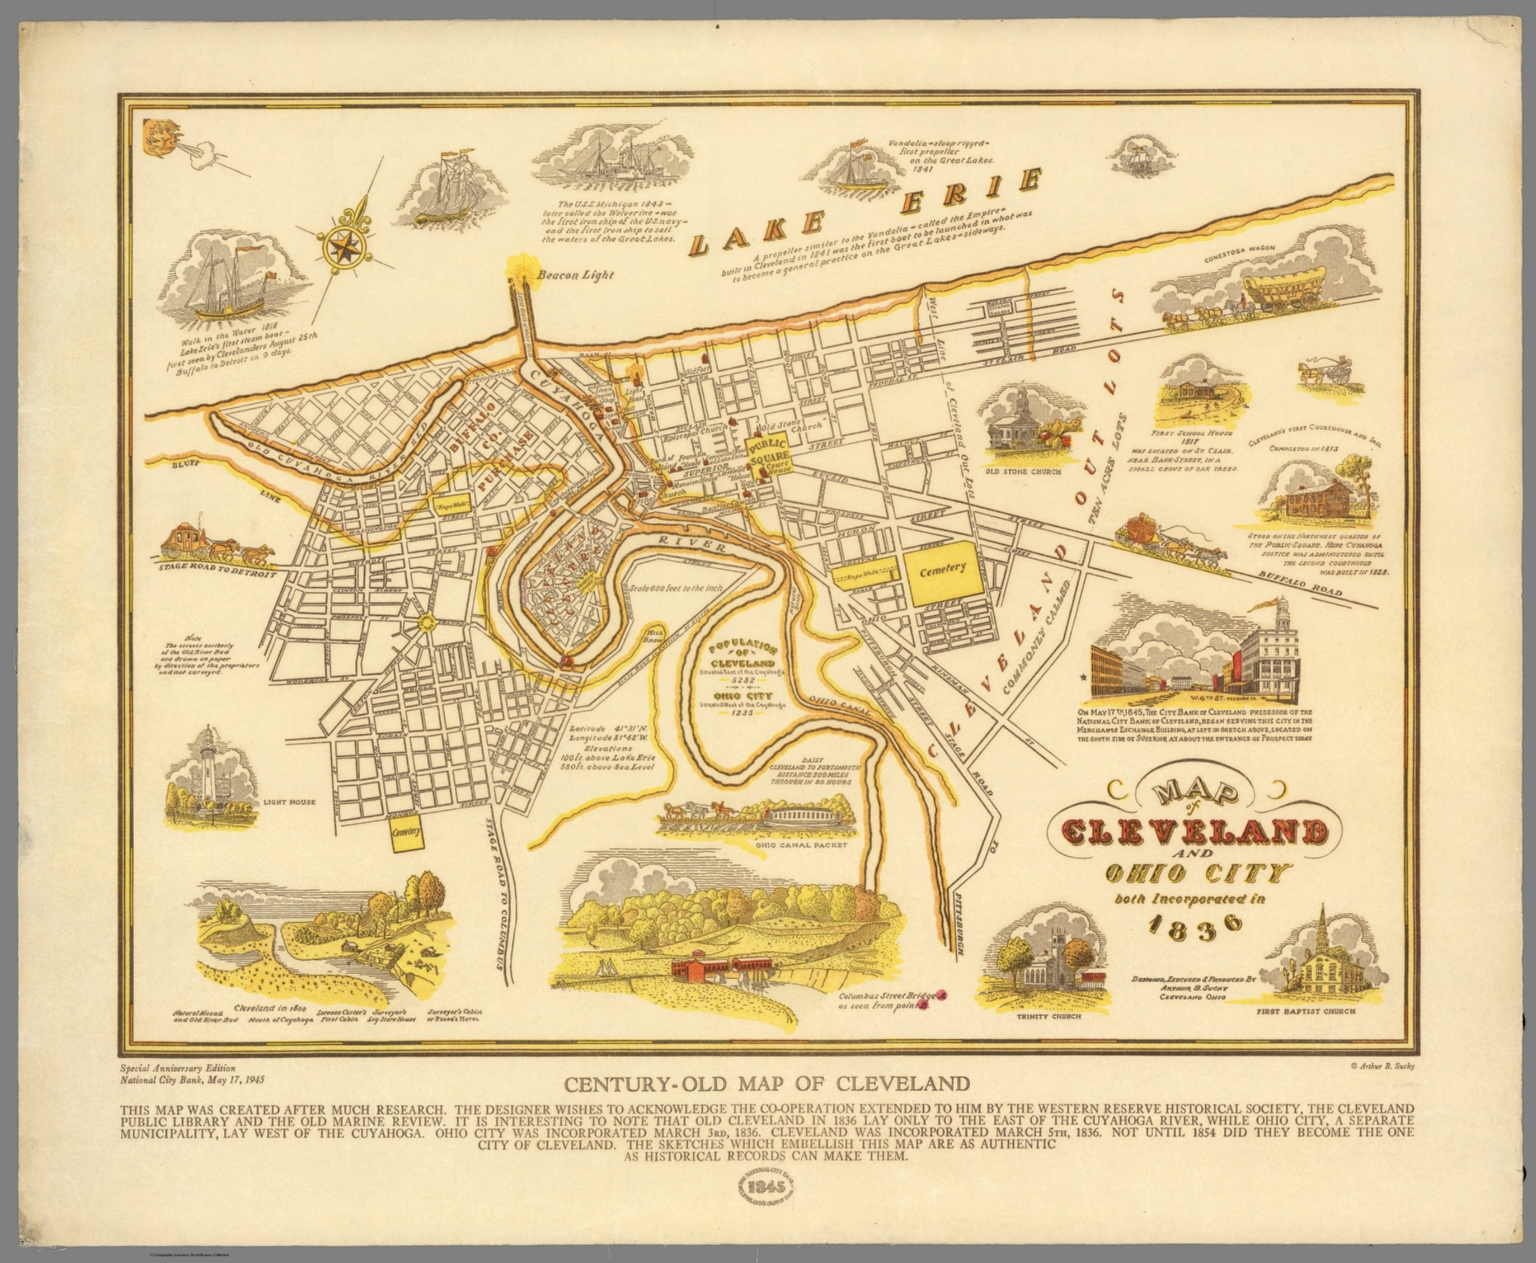 Map Of Cleveland And Ohio City Both Incorporated In 1836 Century